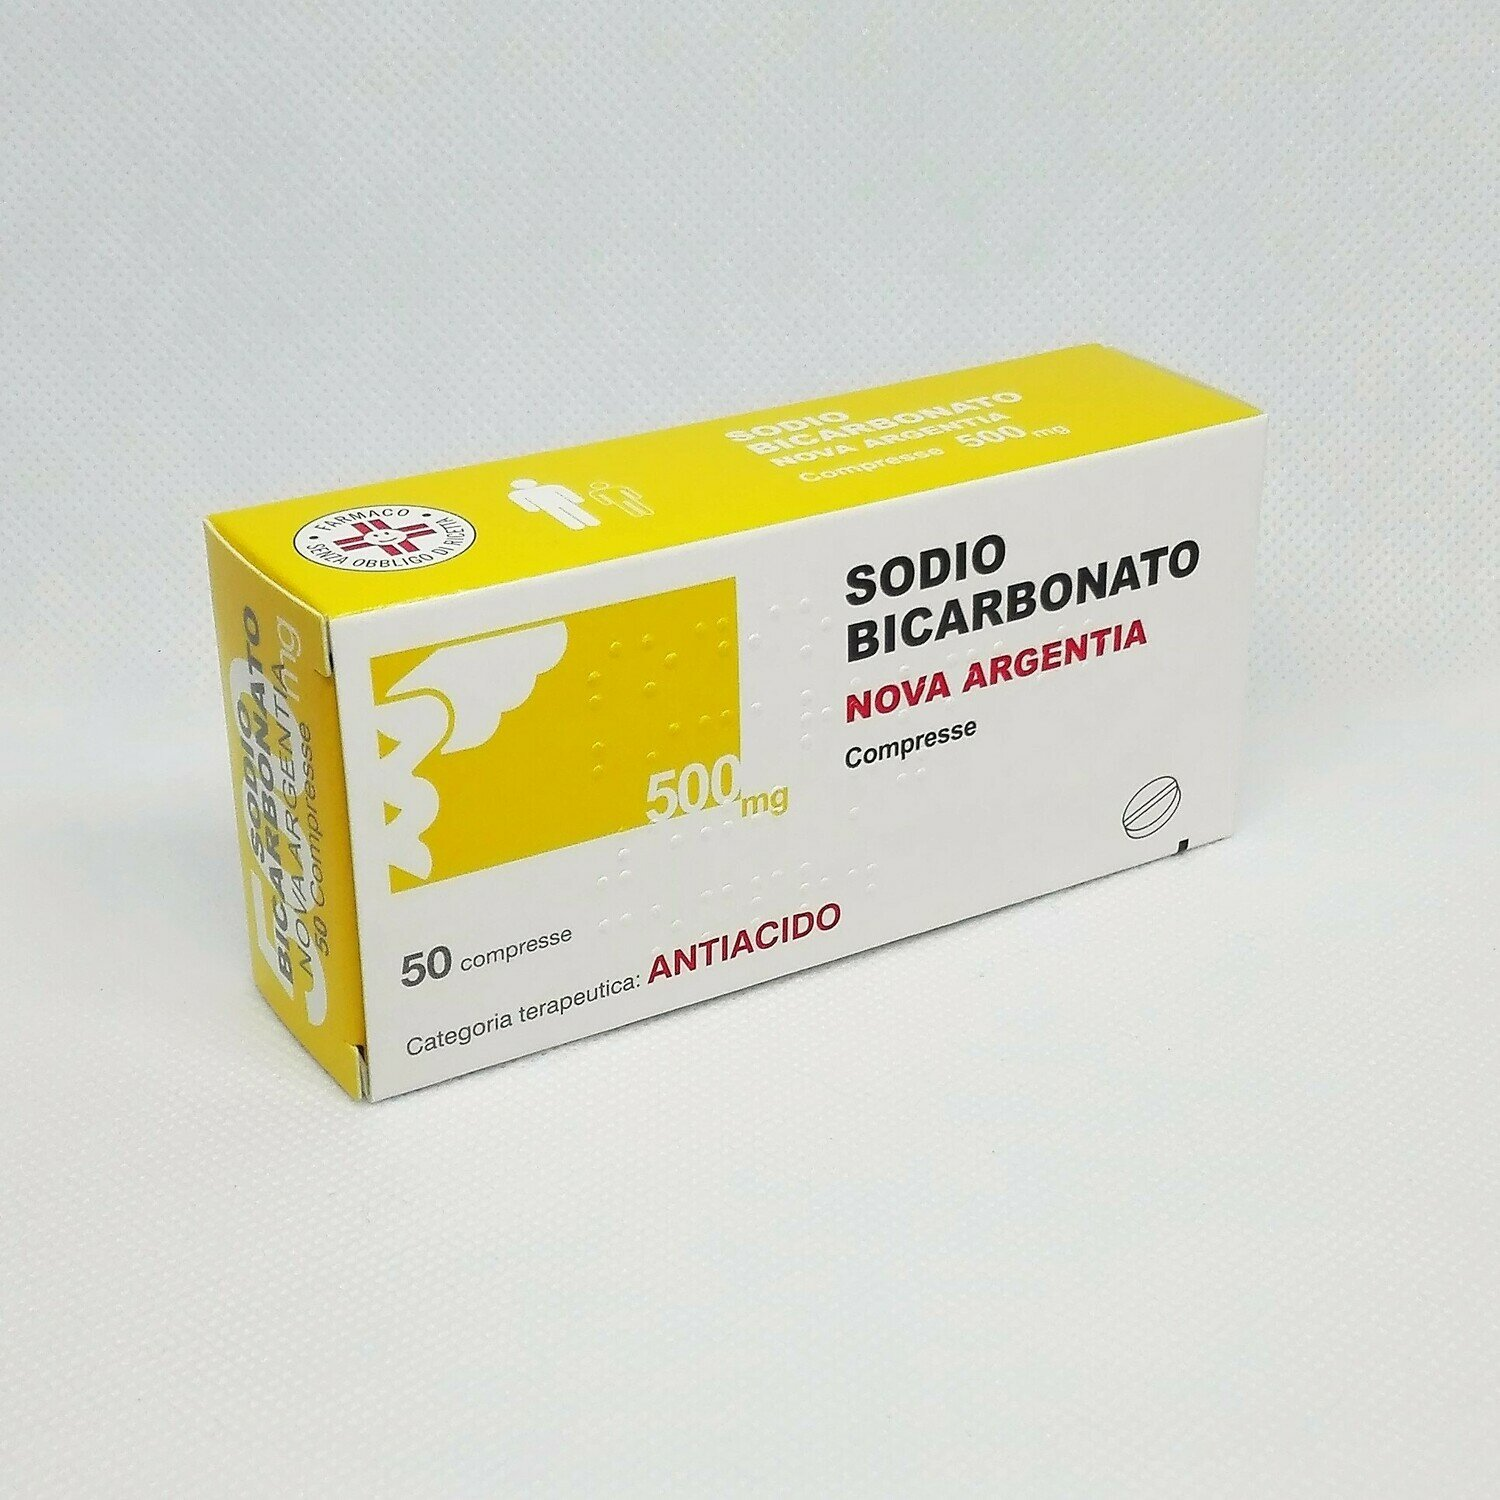 SODIO BICARBONATO 500 MG. COMPRESSE